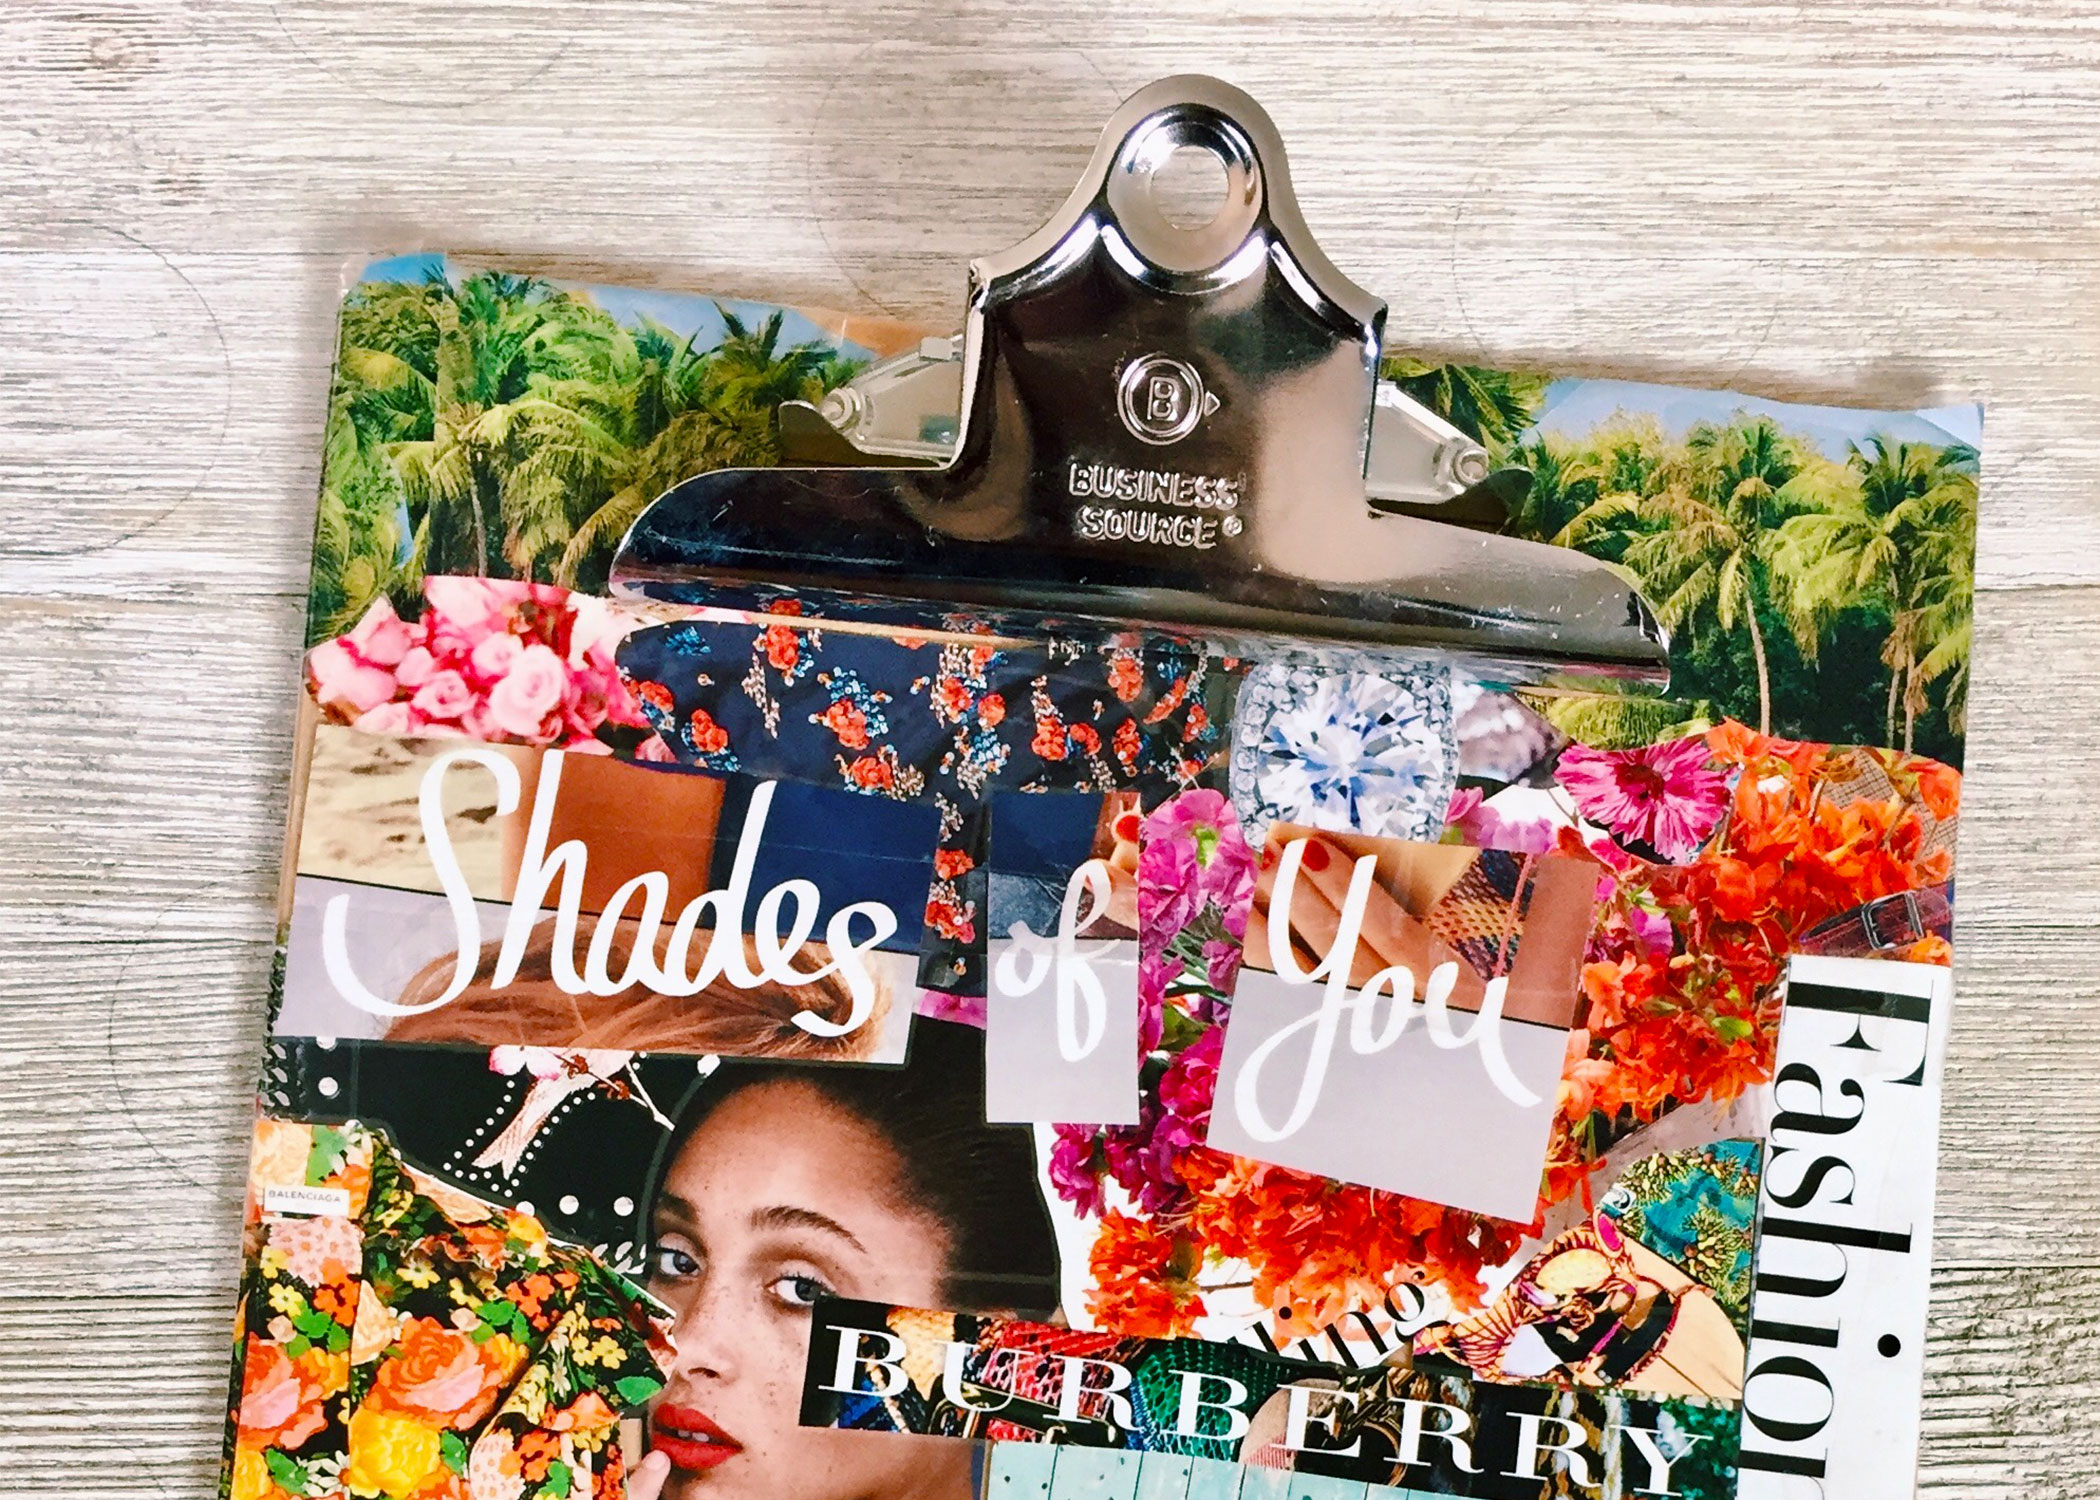 how to make a glam clipboard - Category: LifestyleRead Time: 2 minutes